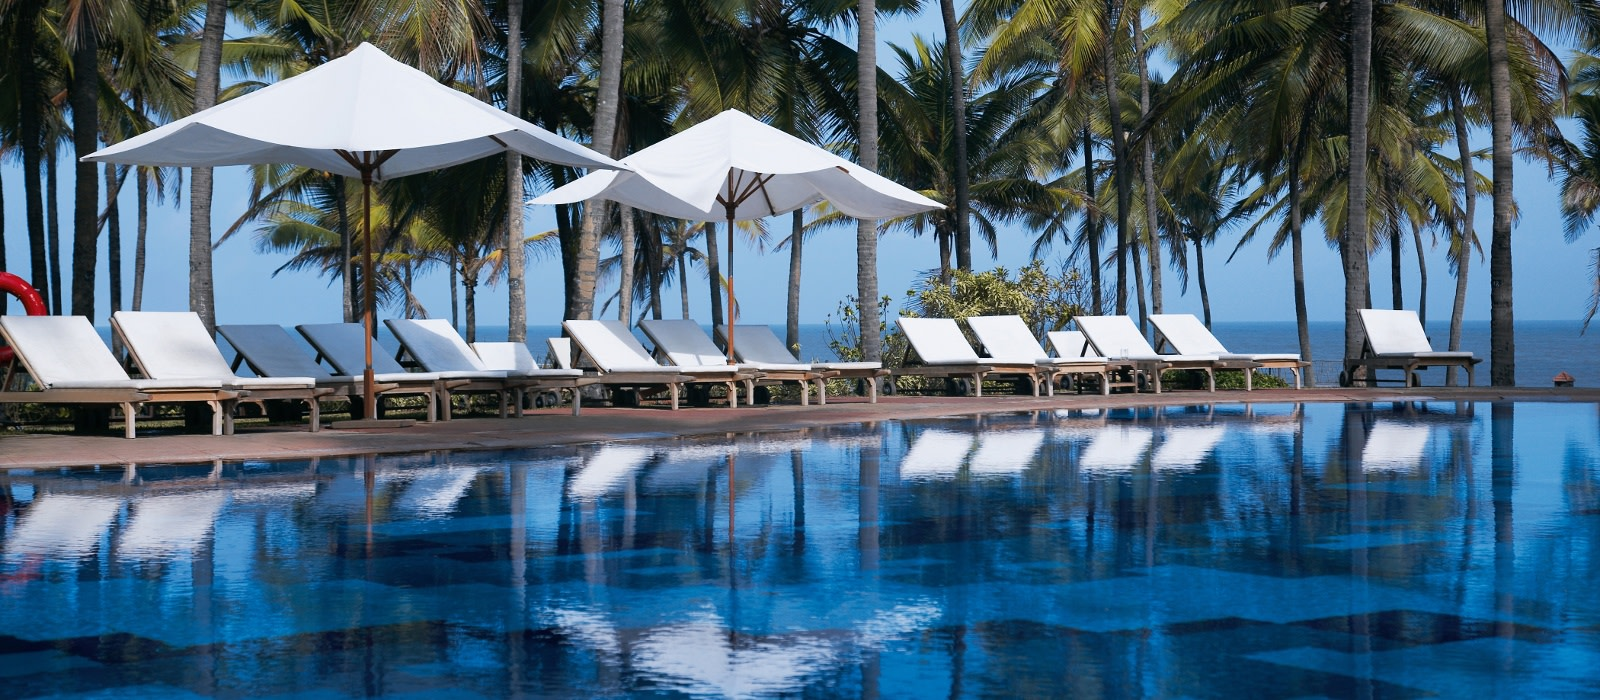 Hotel Vivanta by Taj – Holiday Village Islands & Beaches